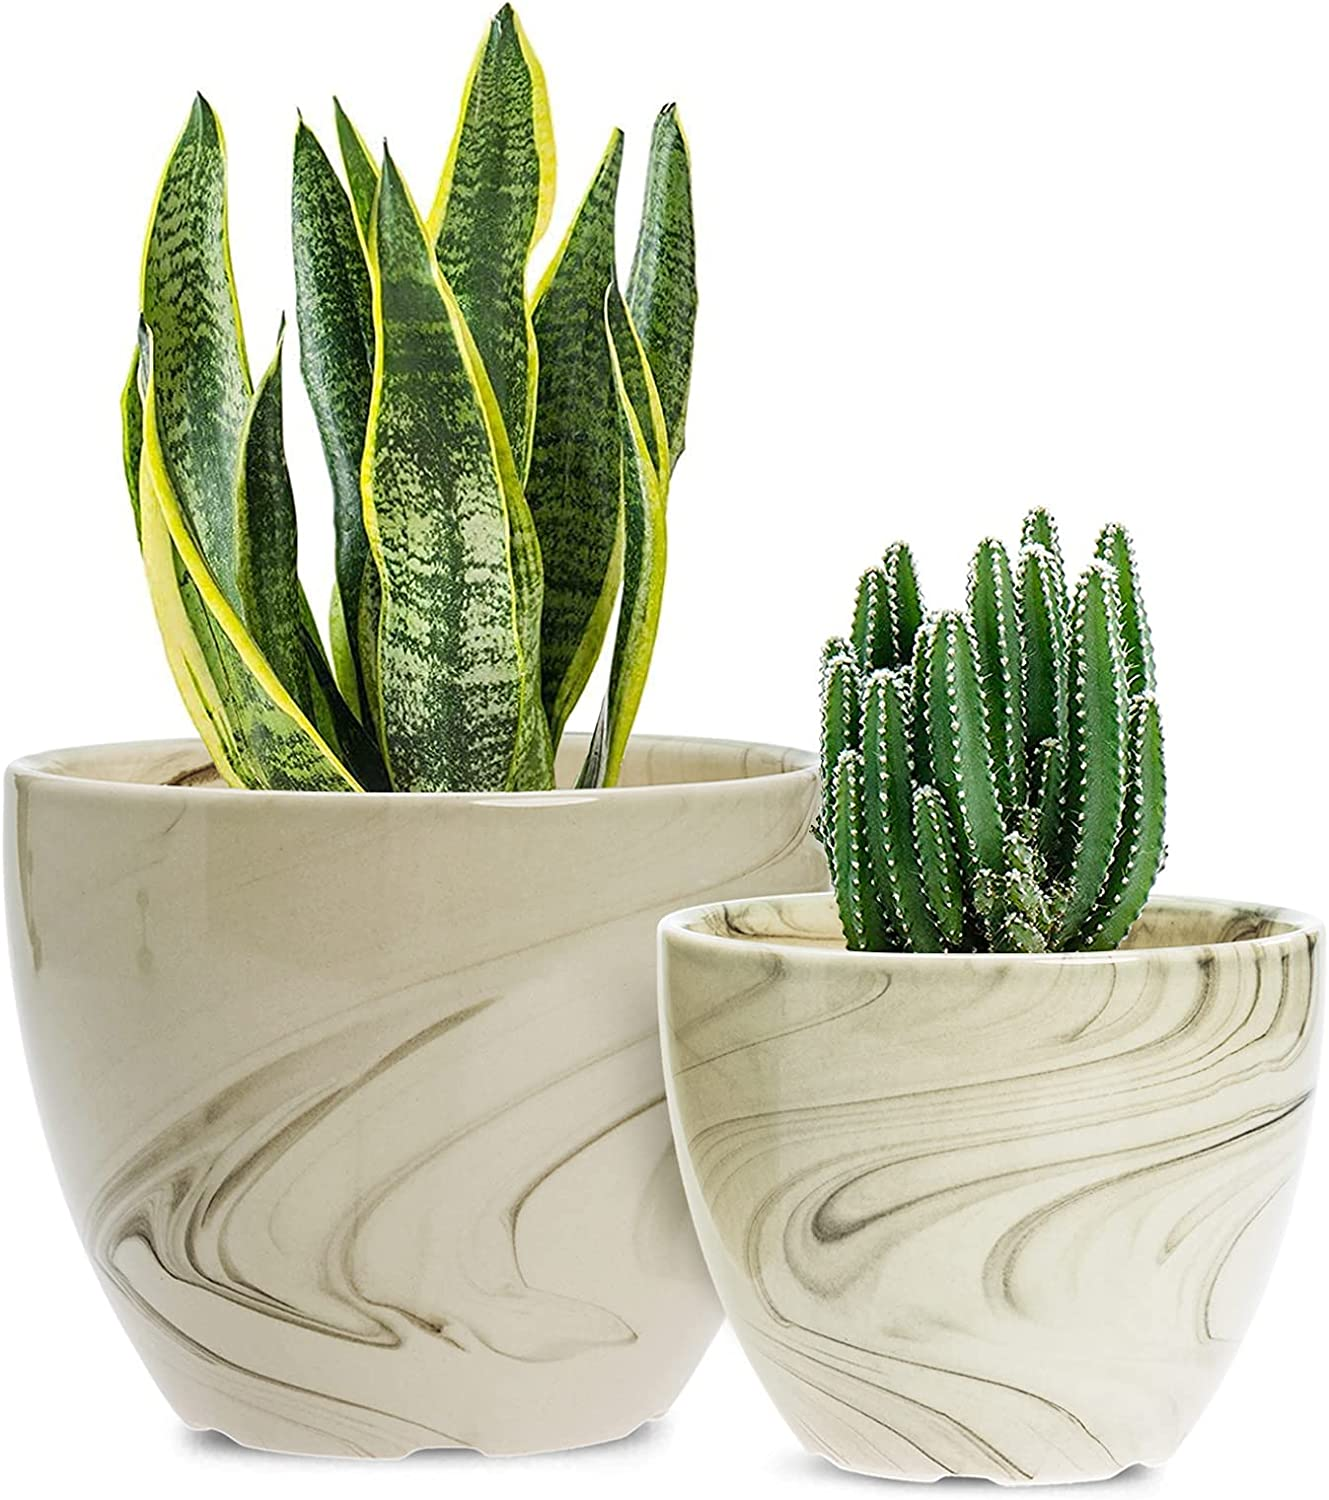 Ceramic Pots for Plants - 6.5 + 5.3 Inch Garden Planters with Drainage Holes and Saucers, Indoor Plant Containers with Beige and Handpainted Marble Ink Patterns